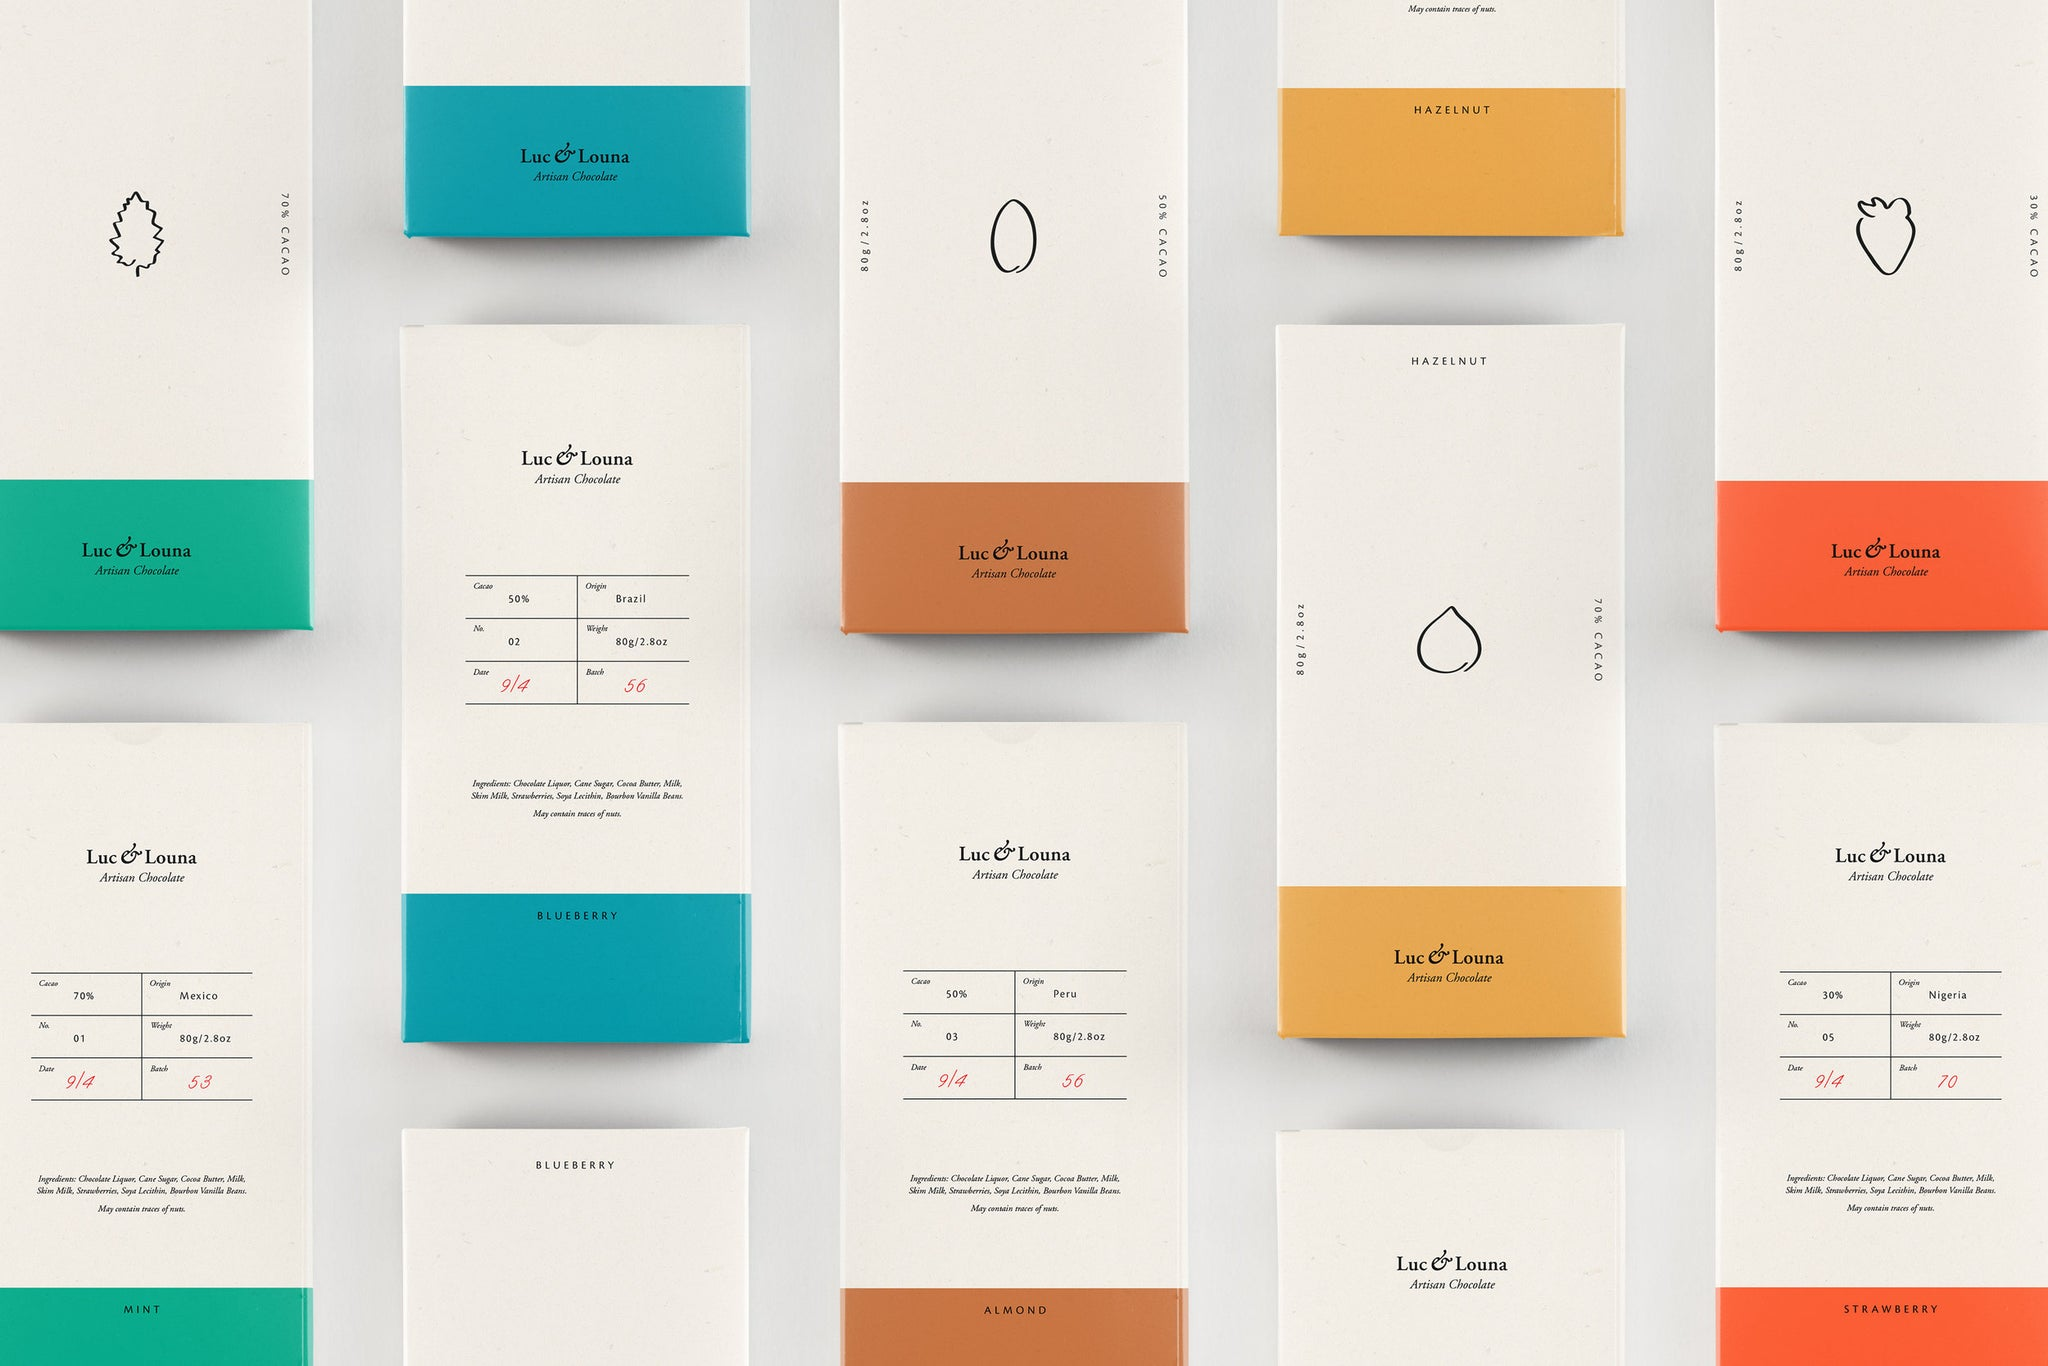 Inspiring minimalist design luxury product design